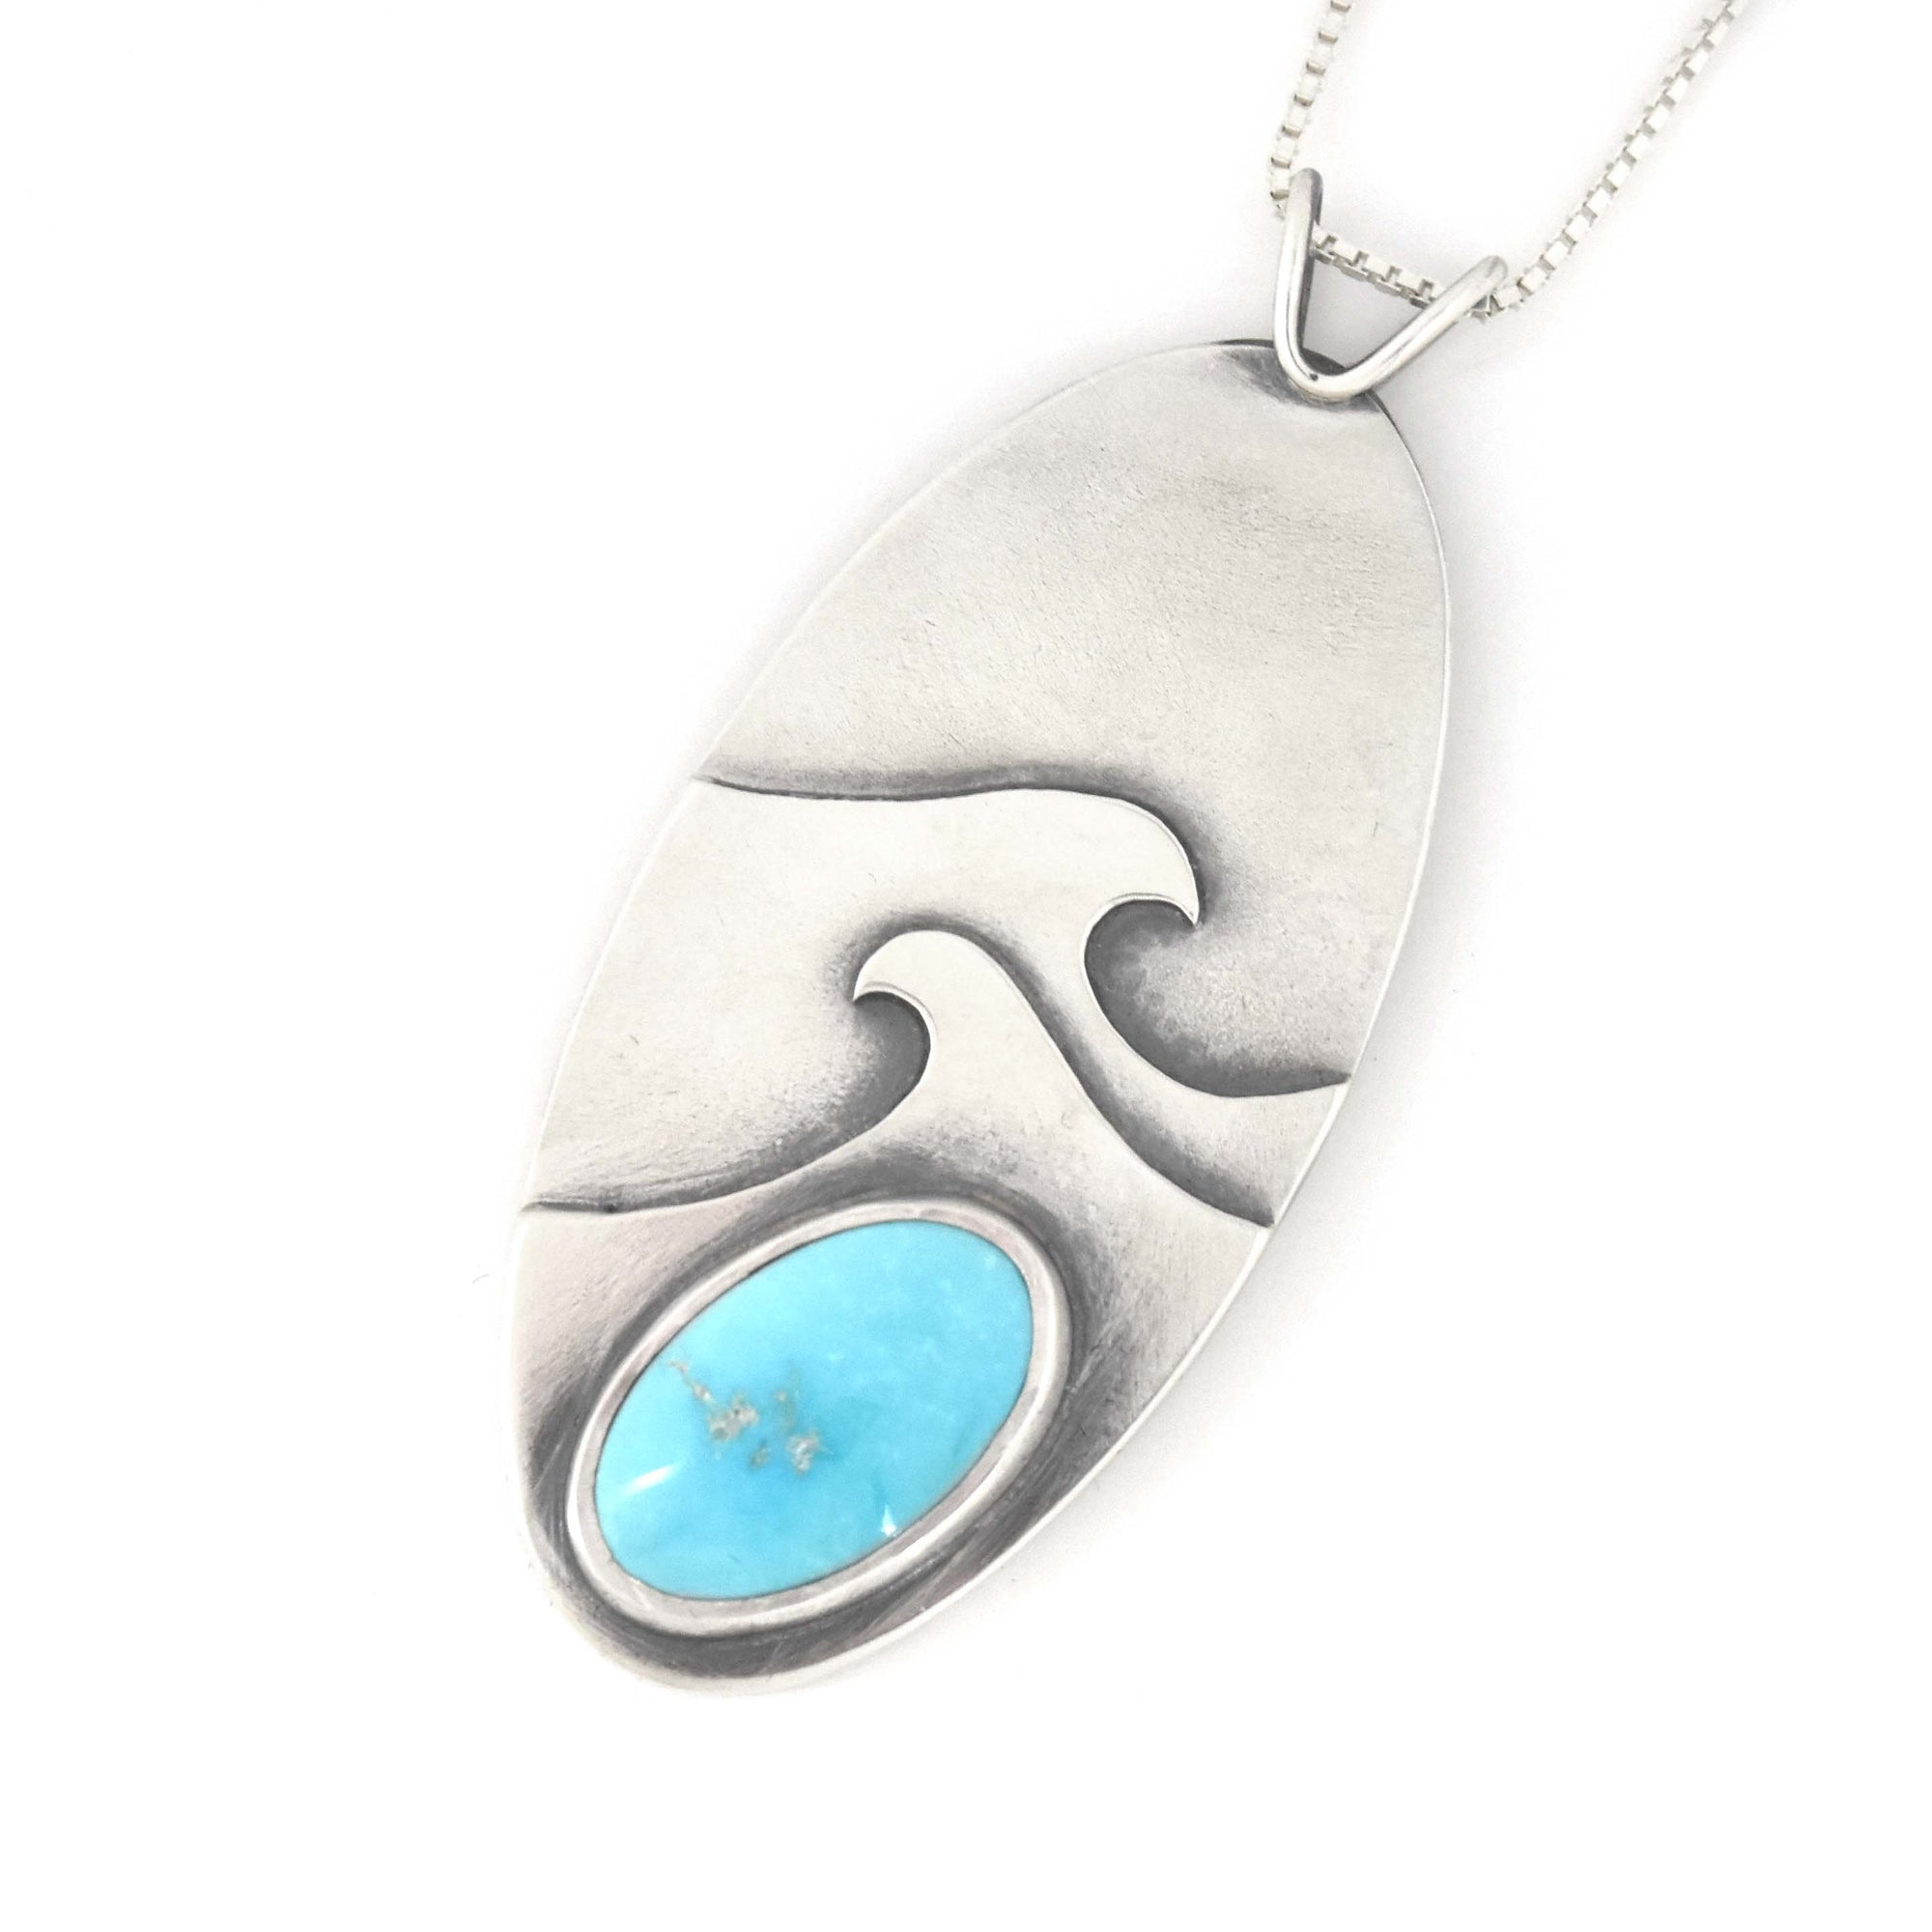 Cresting Turquoise Wave Wonderland Pendant, Silver Pendant handmade by Beth Millner Jewelry